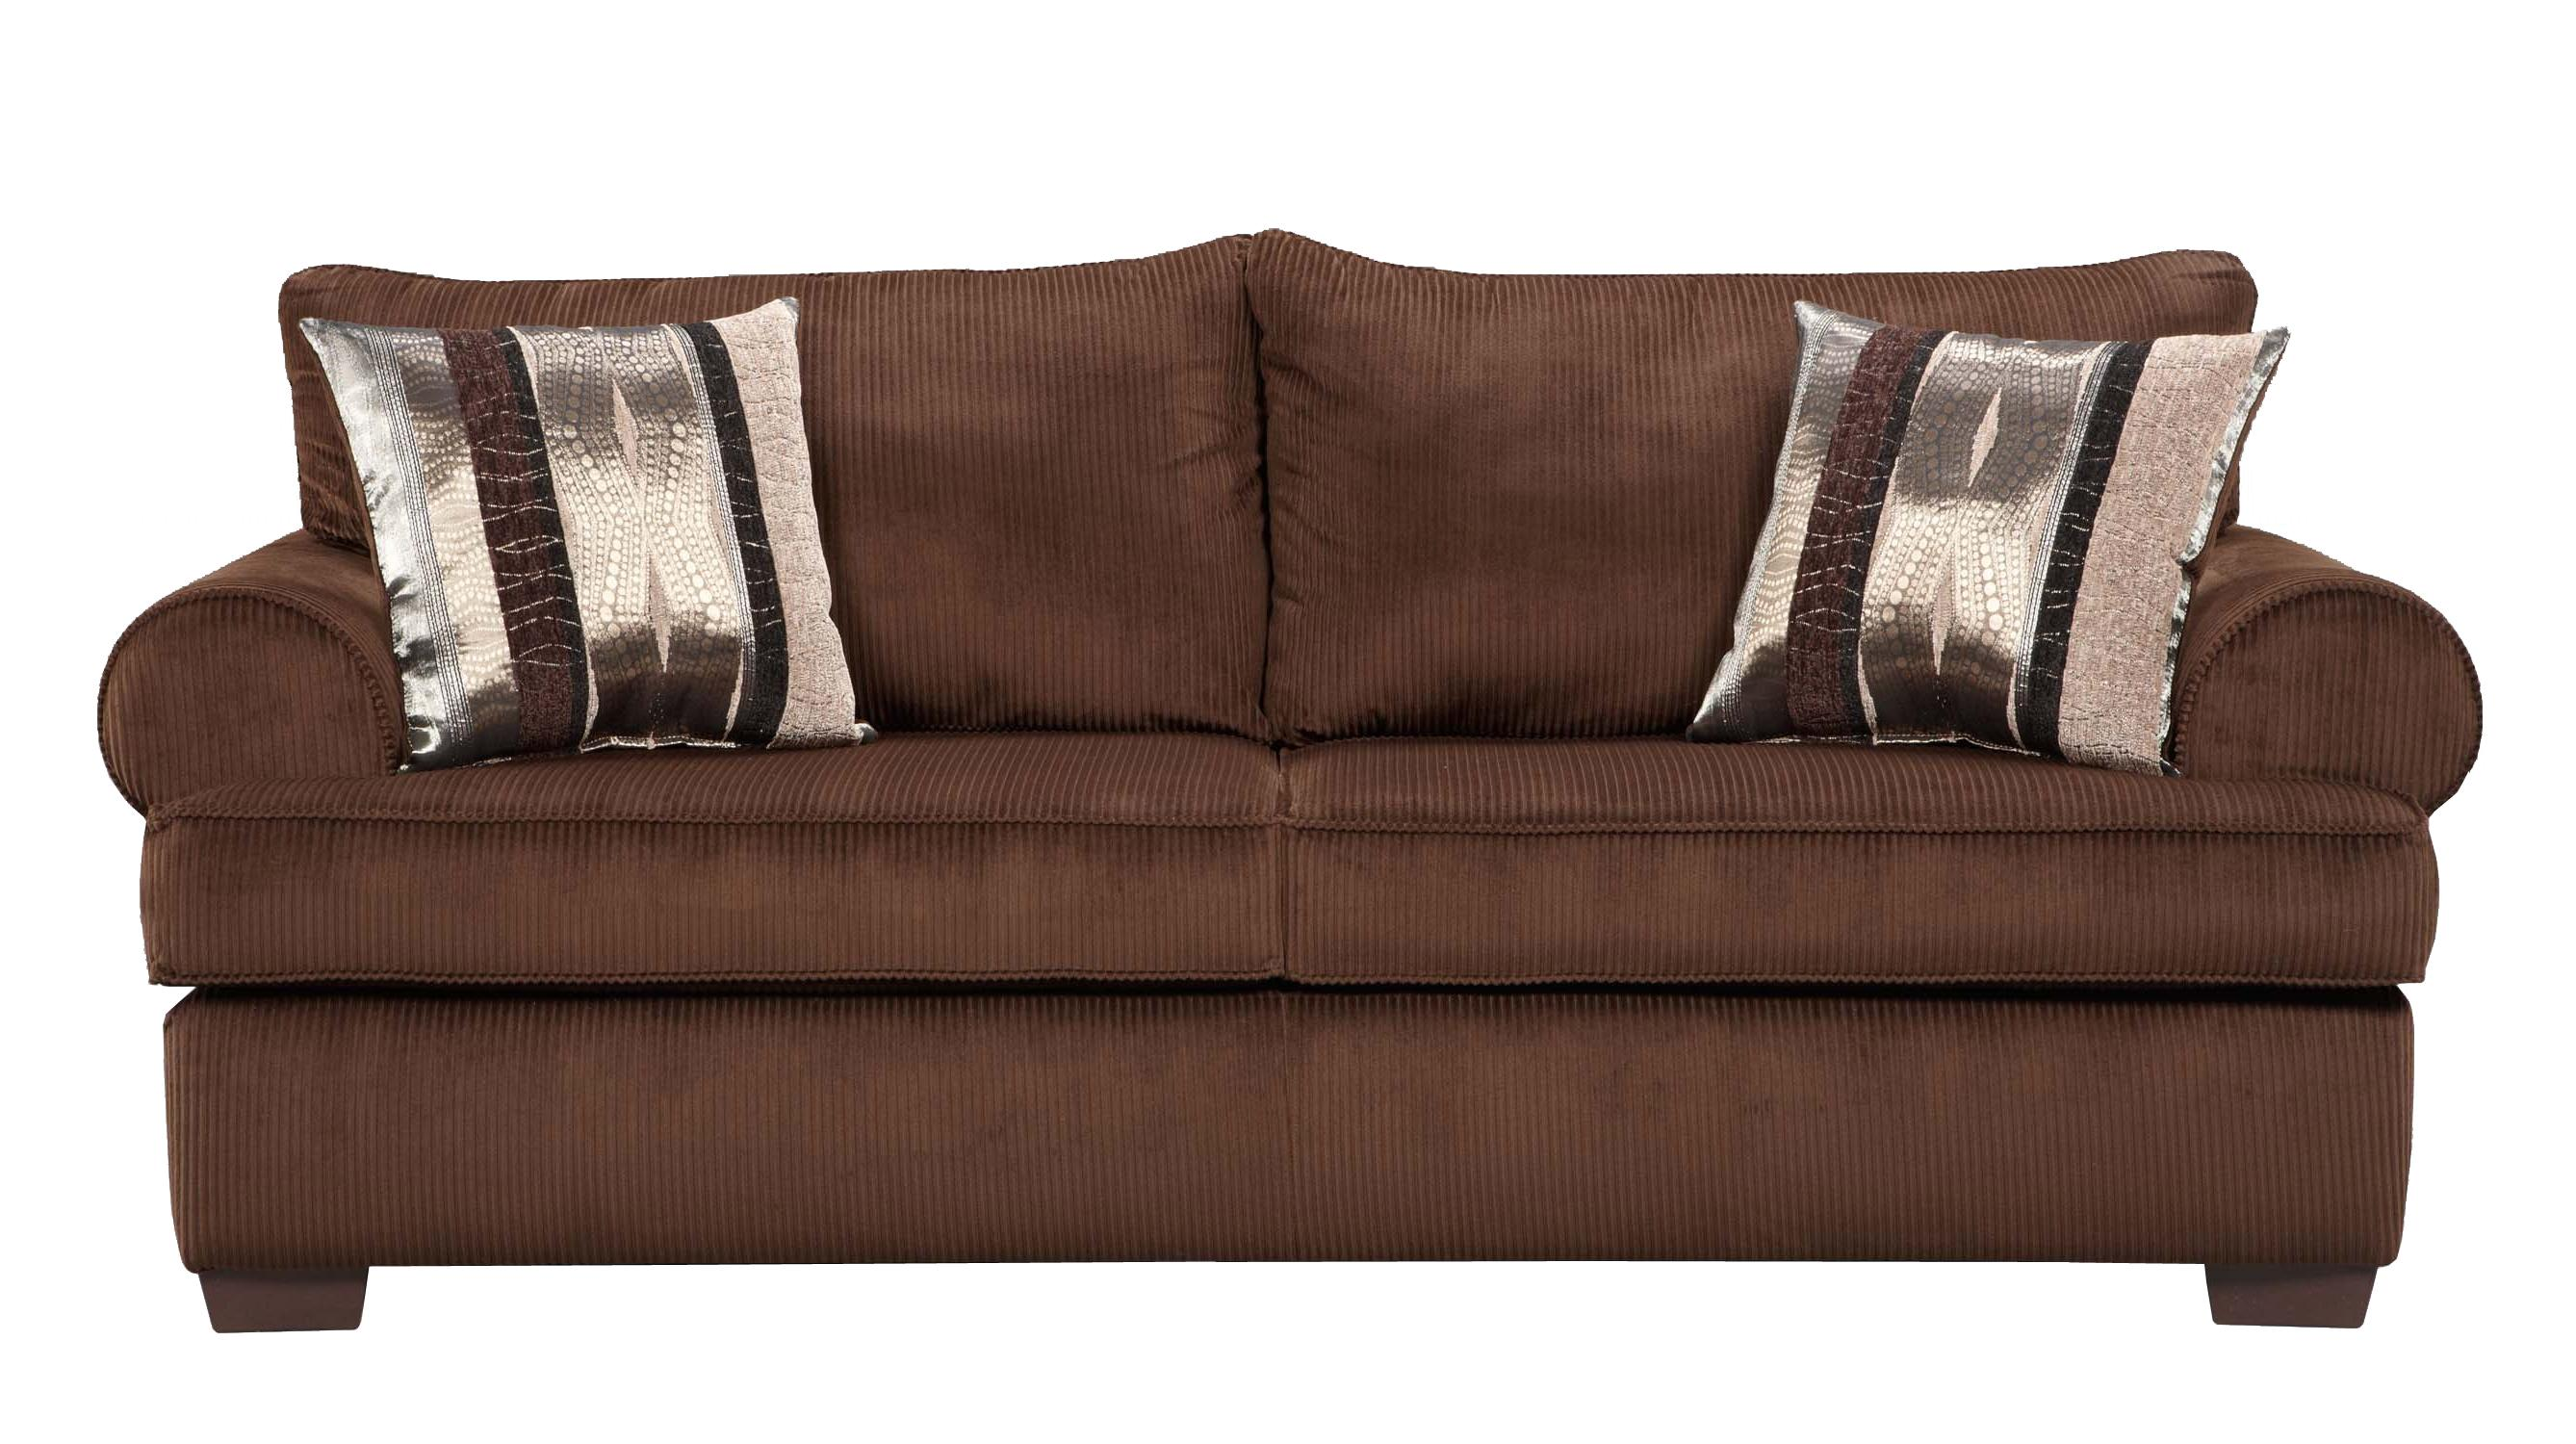 Affordable Furniture 6400 Sofa - Item Number: 6403 B